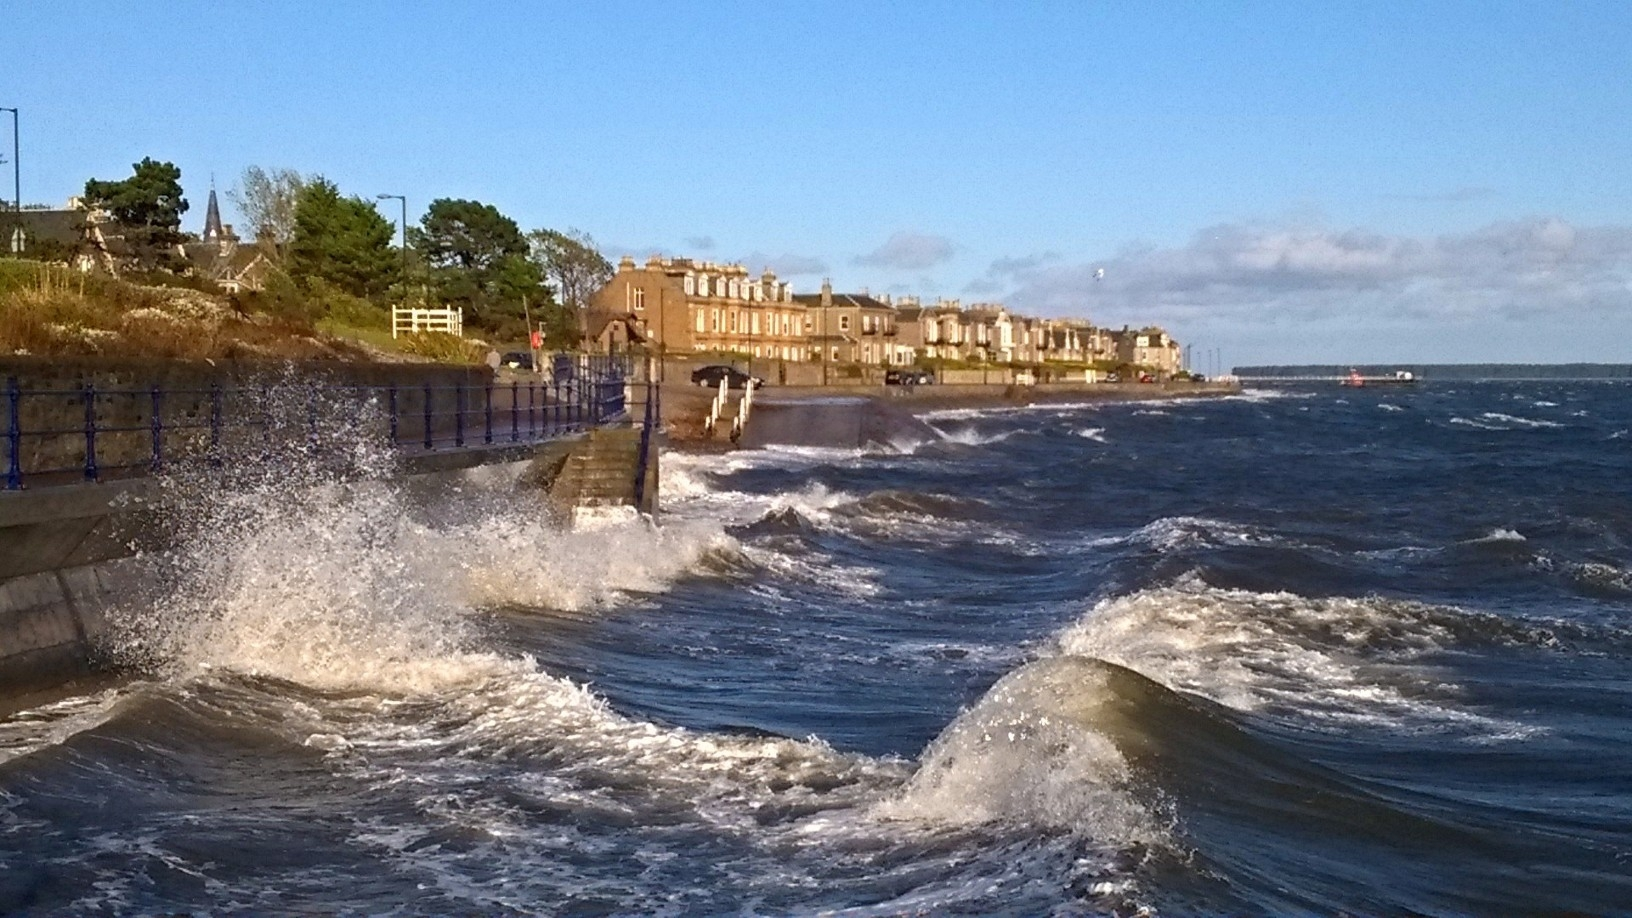 Under a pretty blue sky, the waves of the Tay at Broughty Ferry tell the truth of a windy day in this shot by Jim Glover.